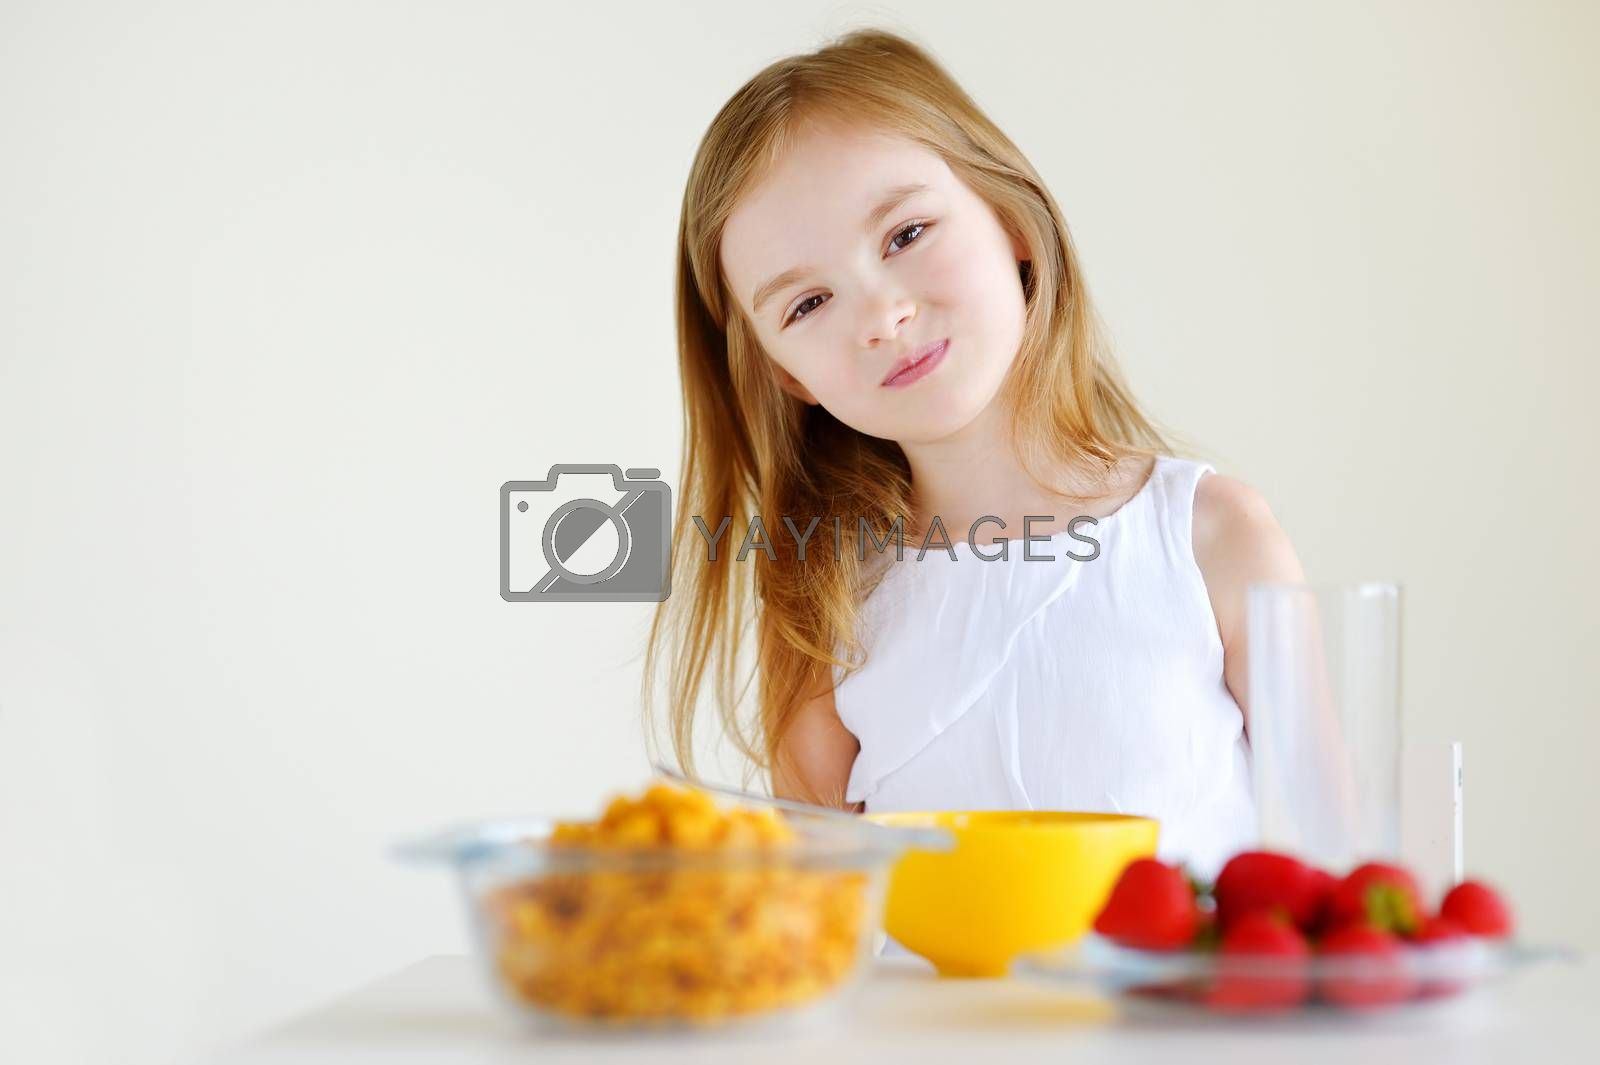 Adorable little girl eating cereal with strawberries and drinking milk in white kitchen